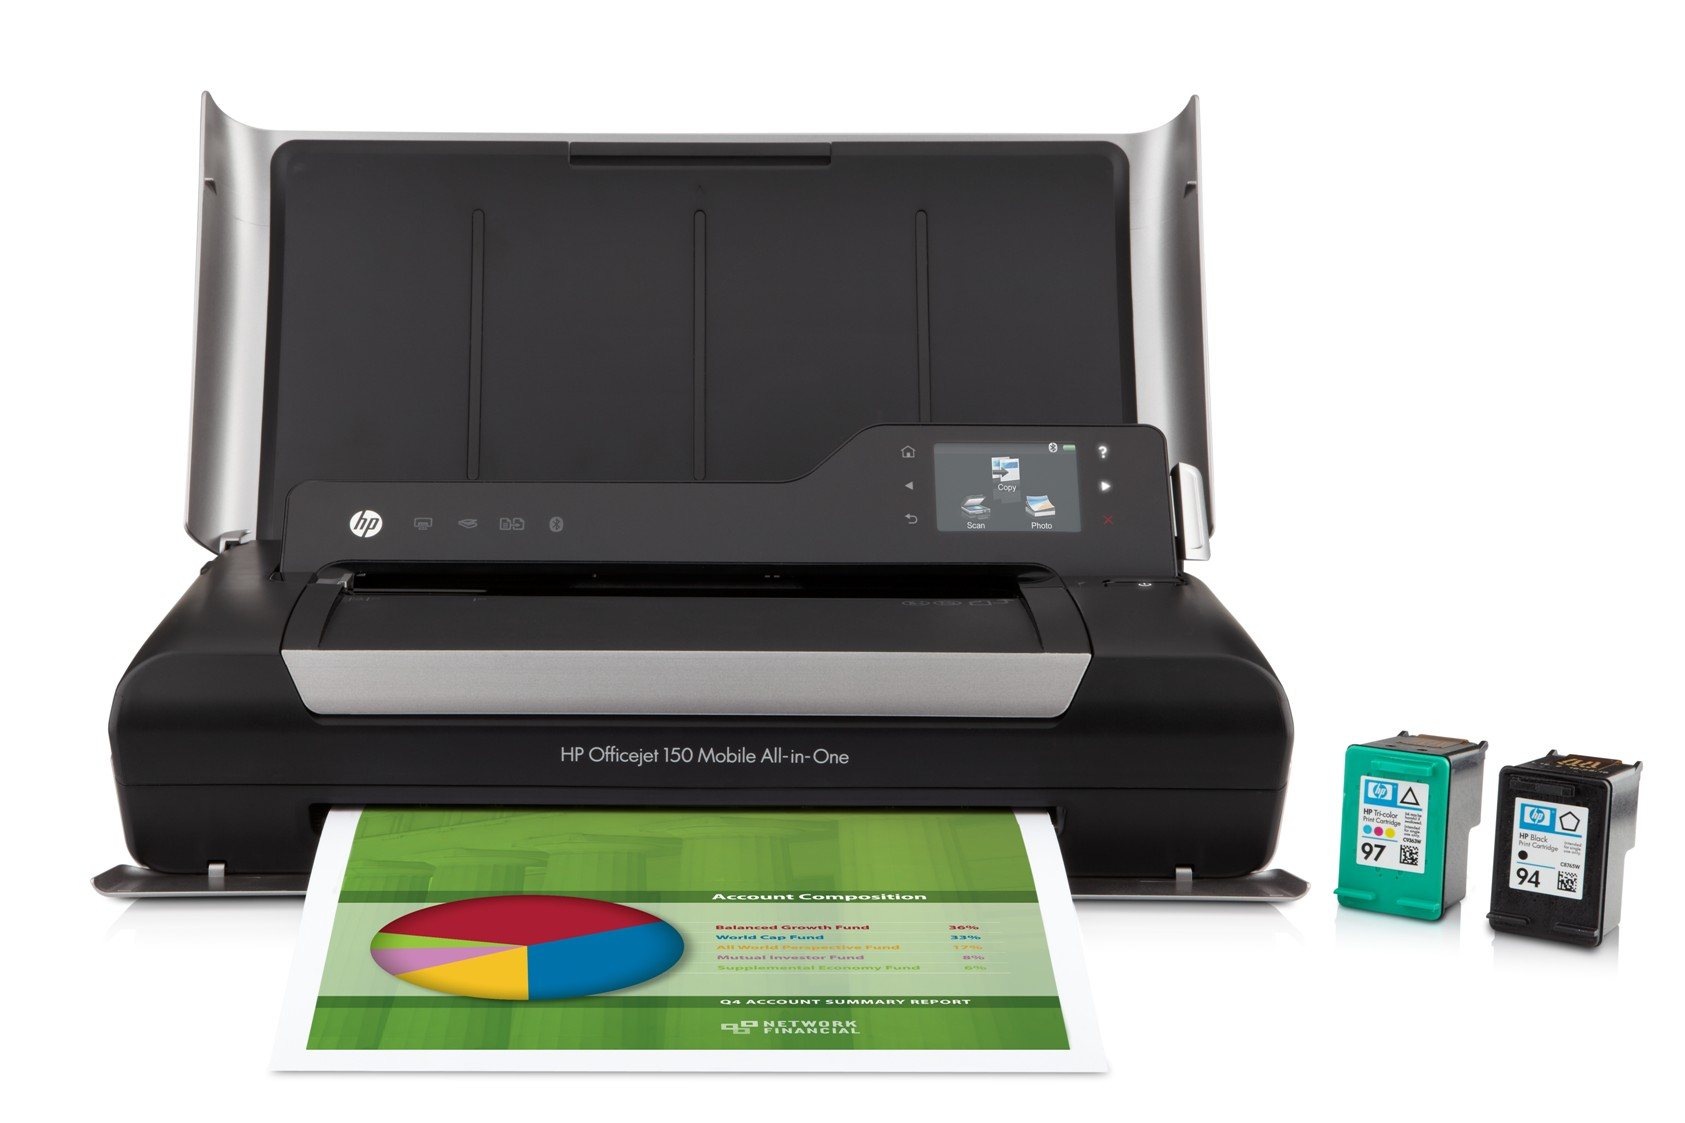 Scan, print and copy on the go with HP's mobile all-in-one printer